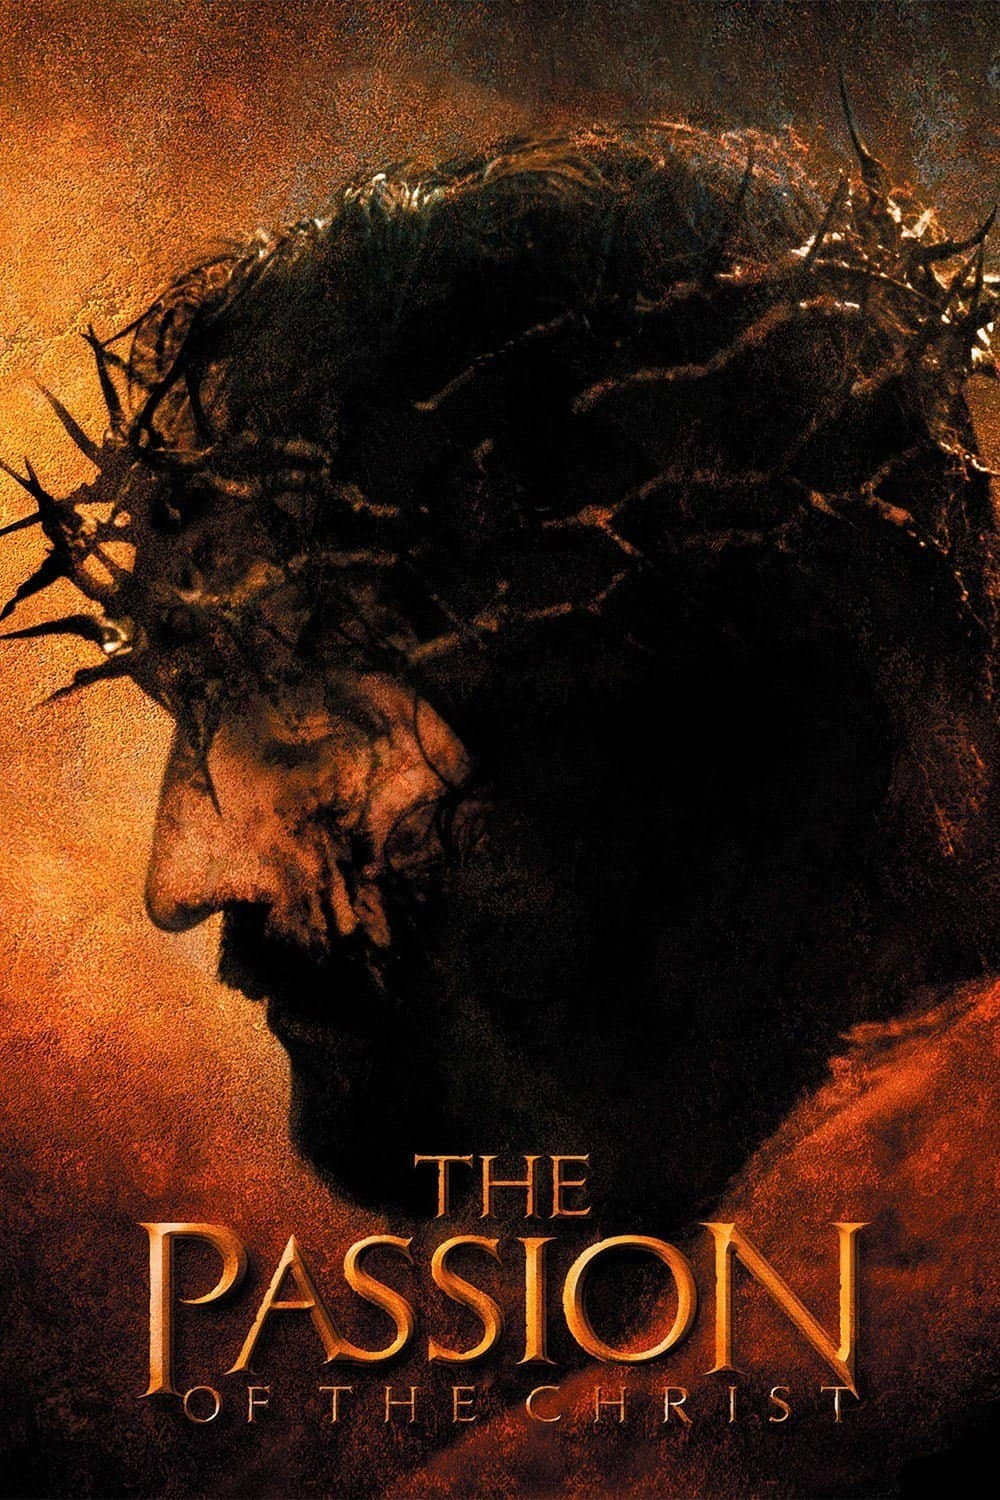 The Passion of the Christ, 2004